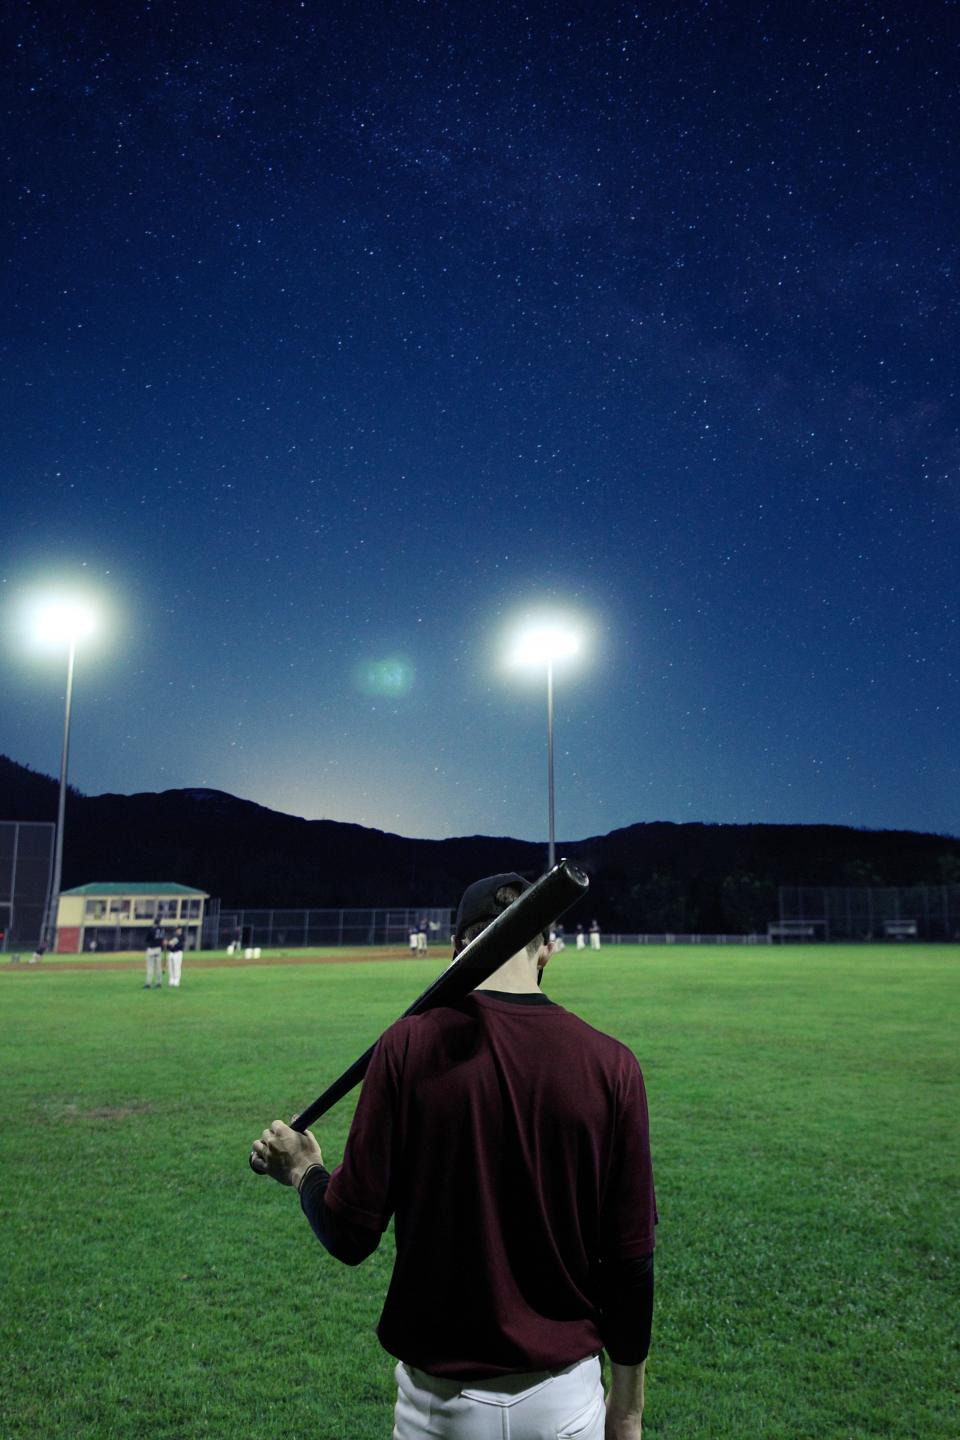 people, space, night, stars, man, alone, solo, dark, baseball, bat, oval, field, green, sad, thinking, reflection, sport, game